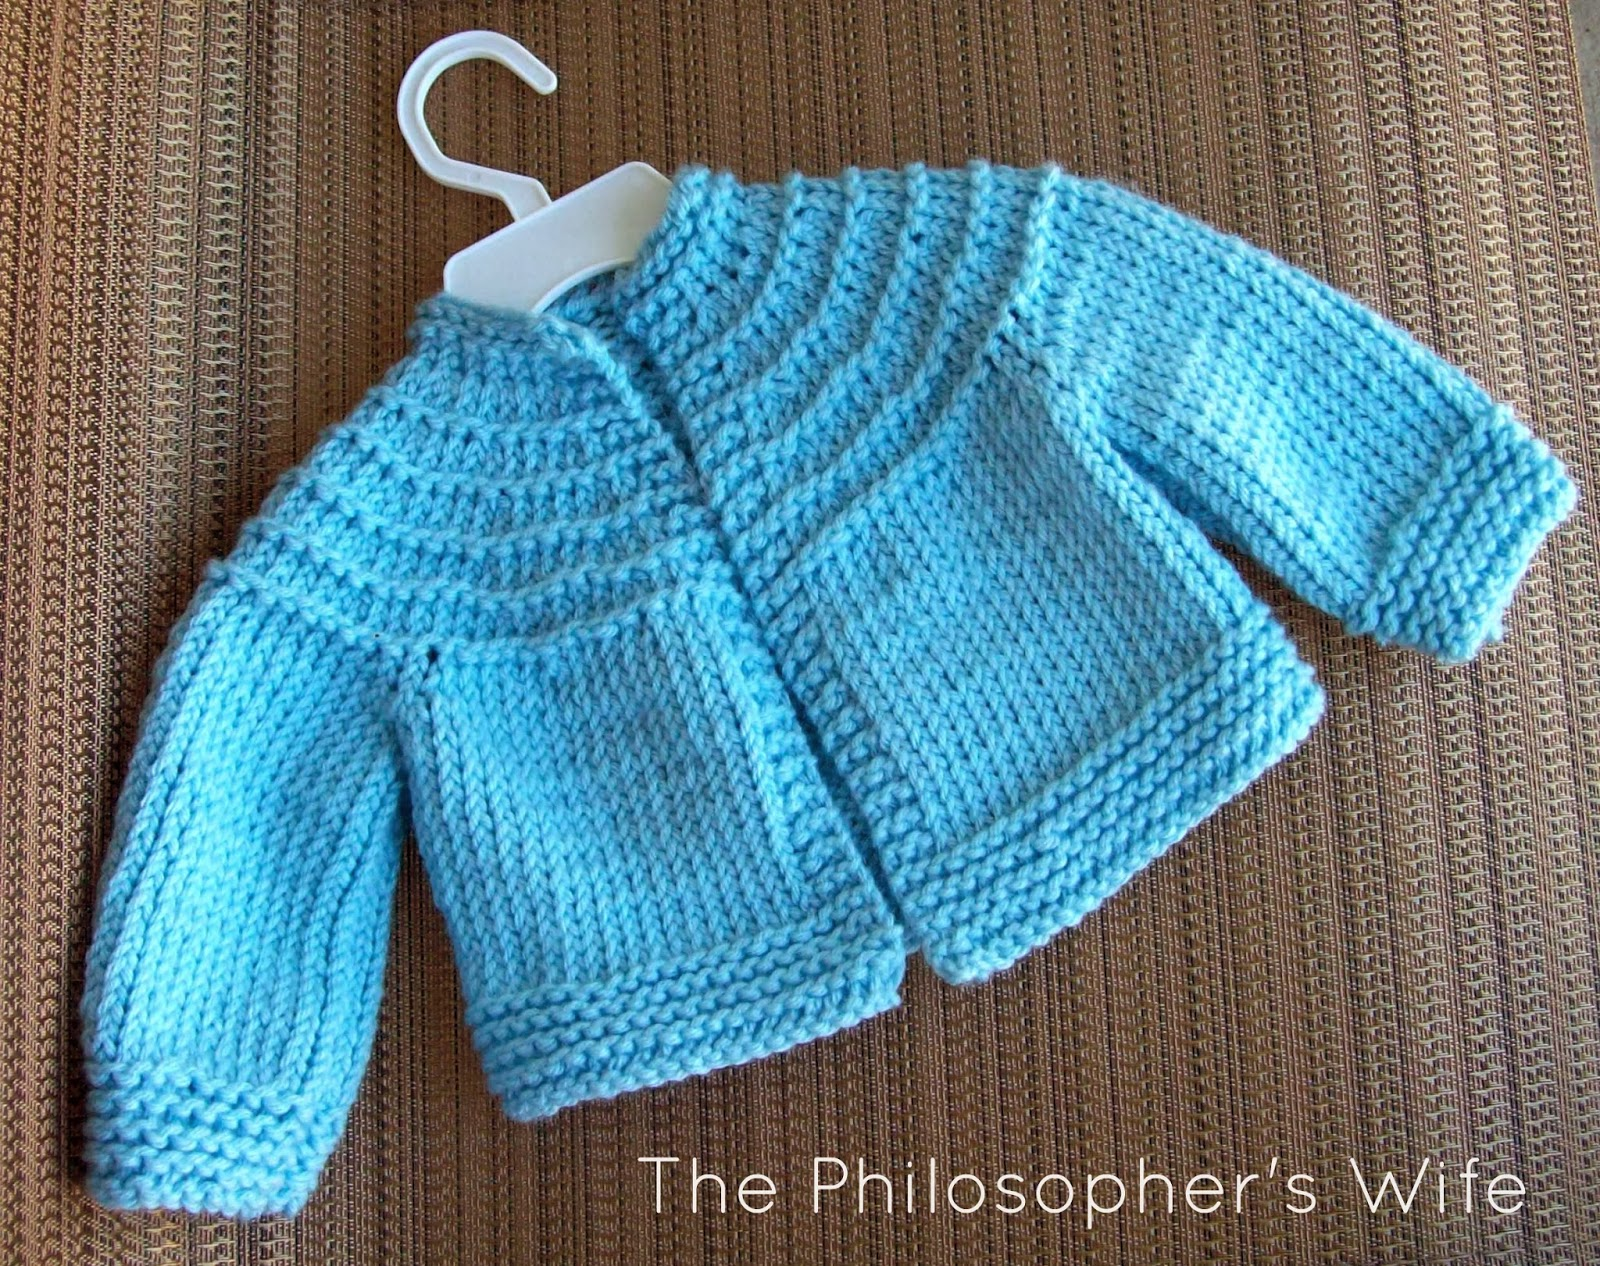 Knitting Patterns For Baby Sweaters Knit In One Piece ...